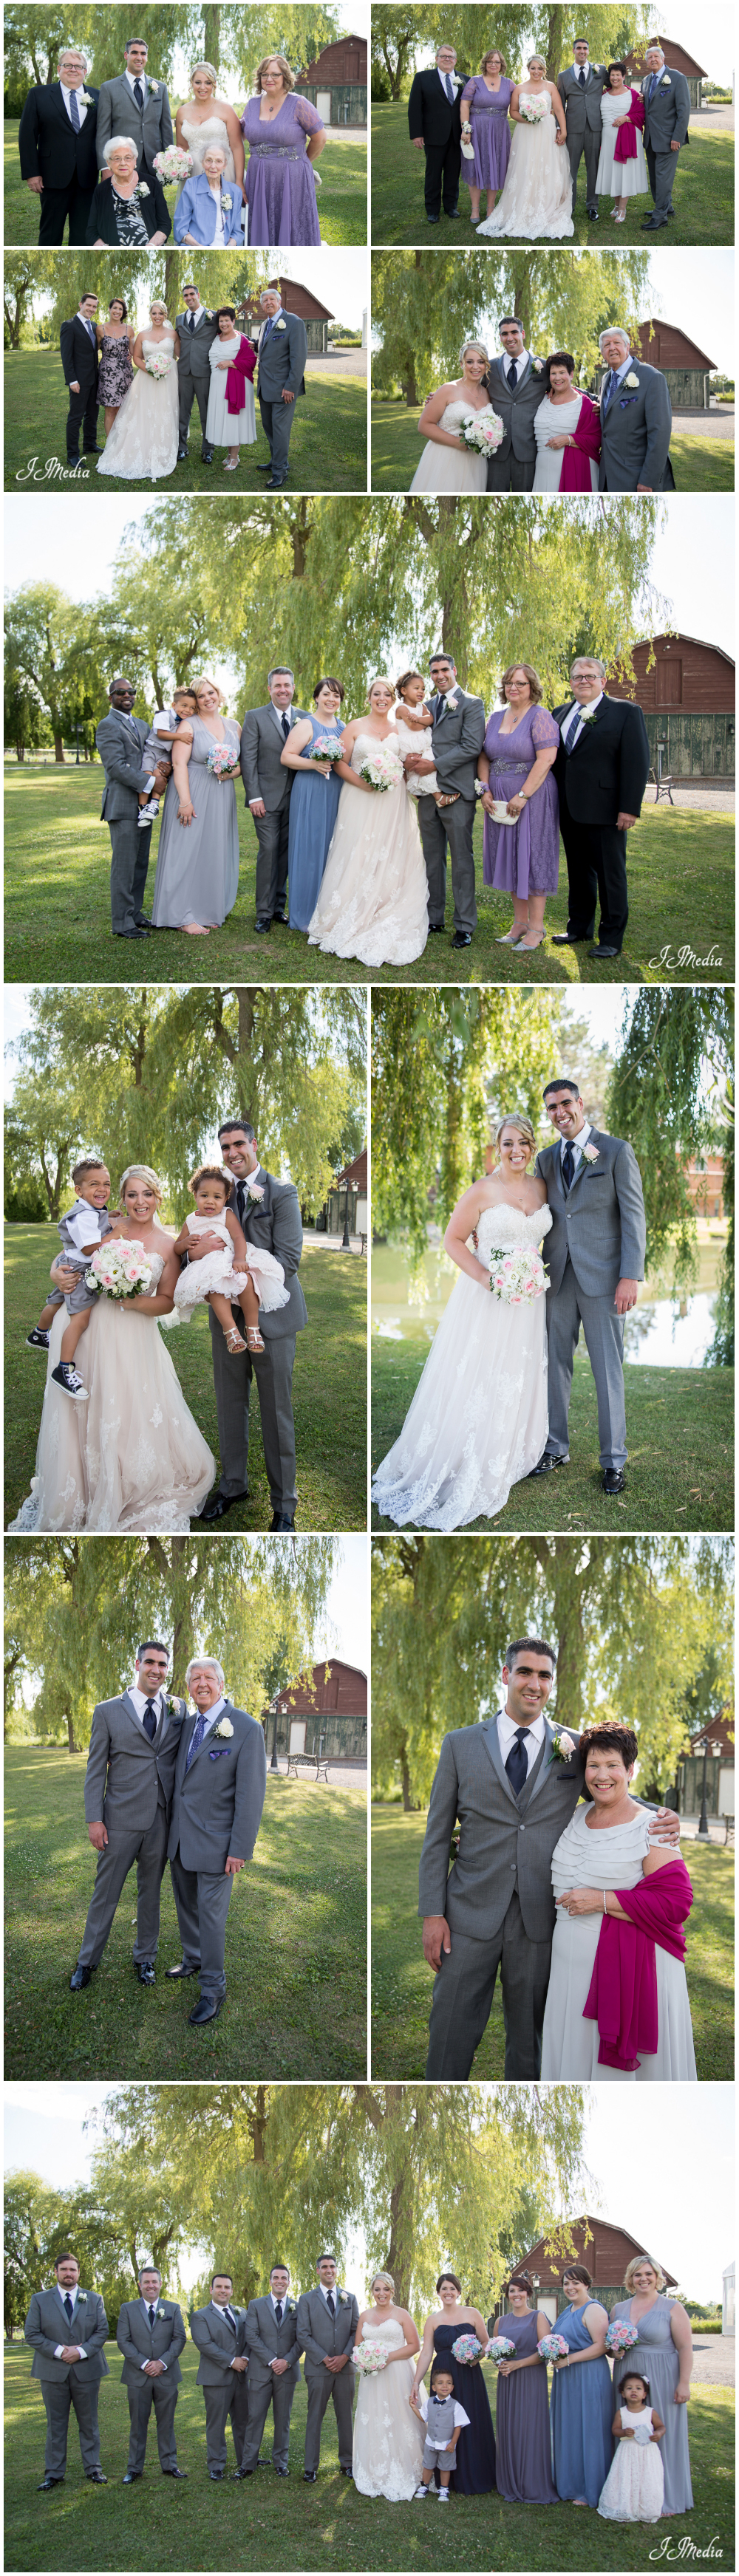 Willow_Springs_Winery_Wedding_JJMedia-6